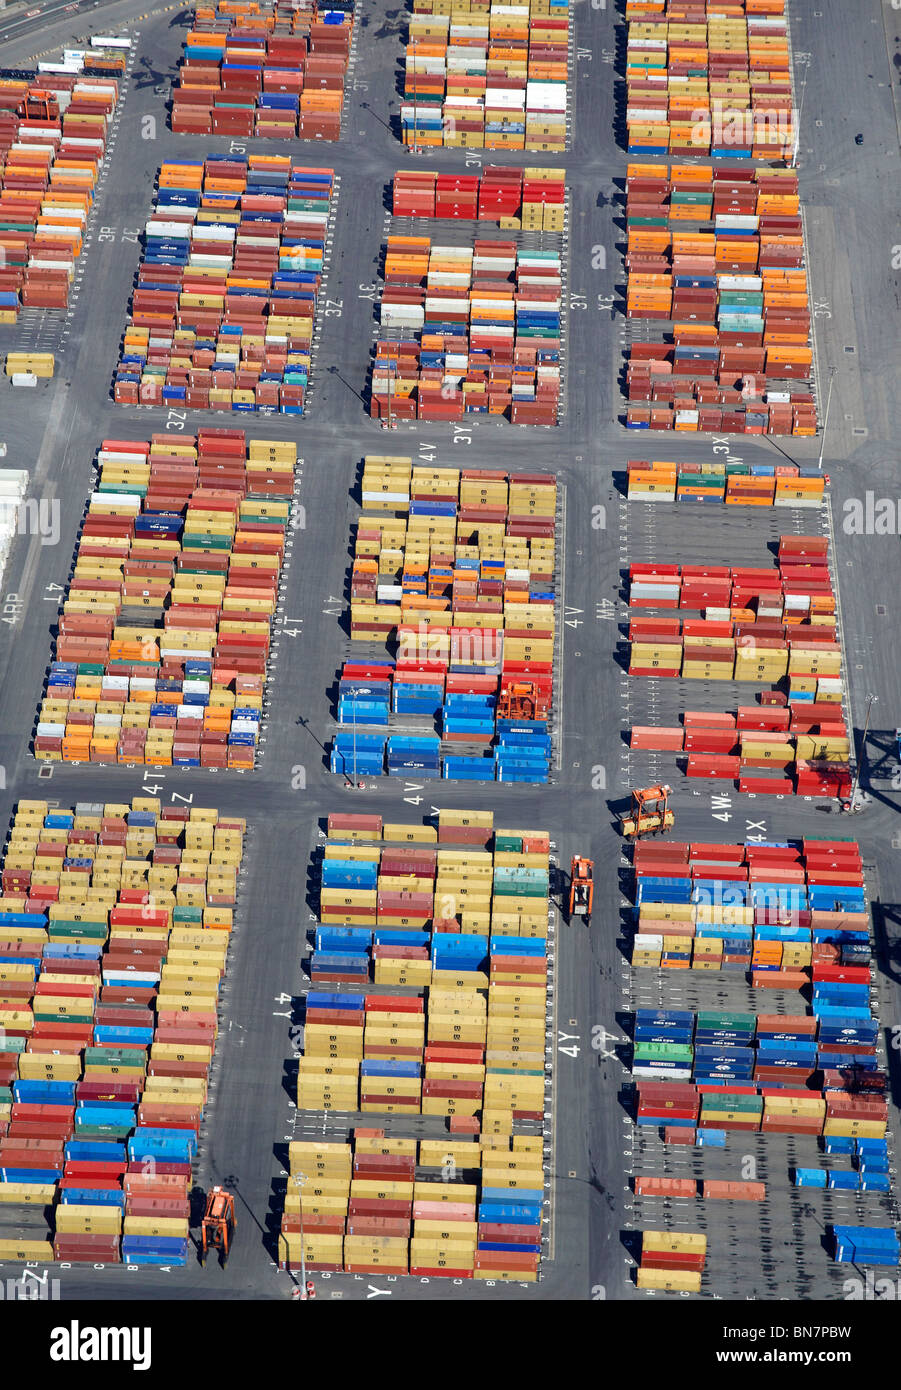 Containers at Bootle Docks, from the air, North West England - Stock Image